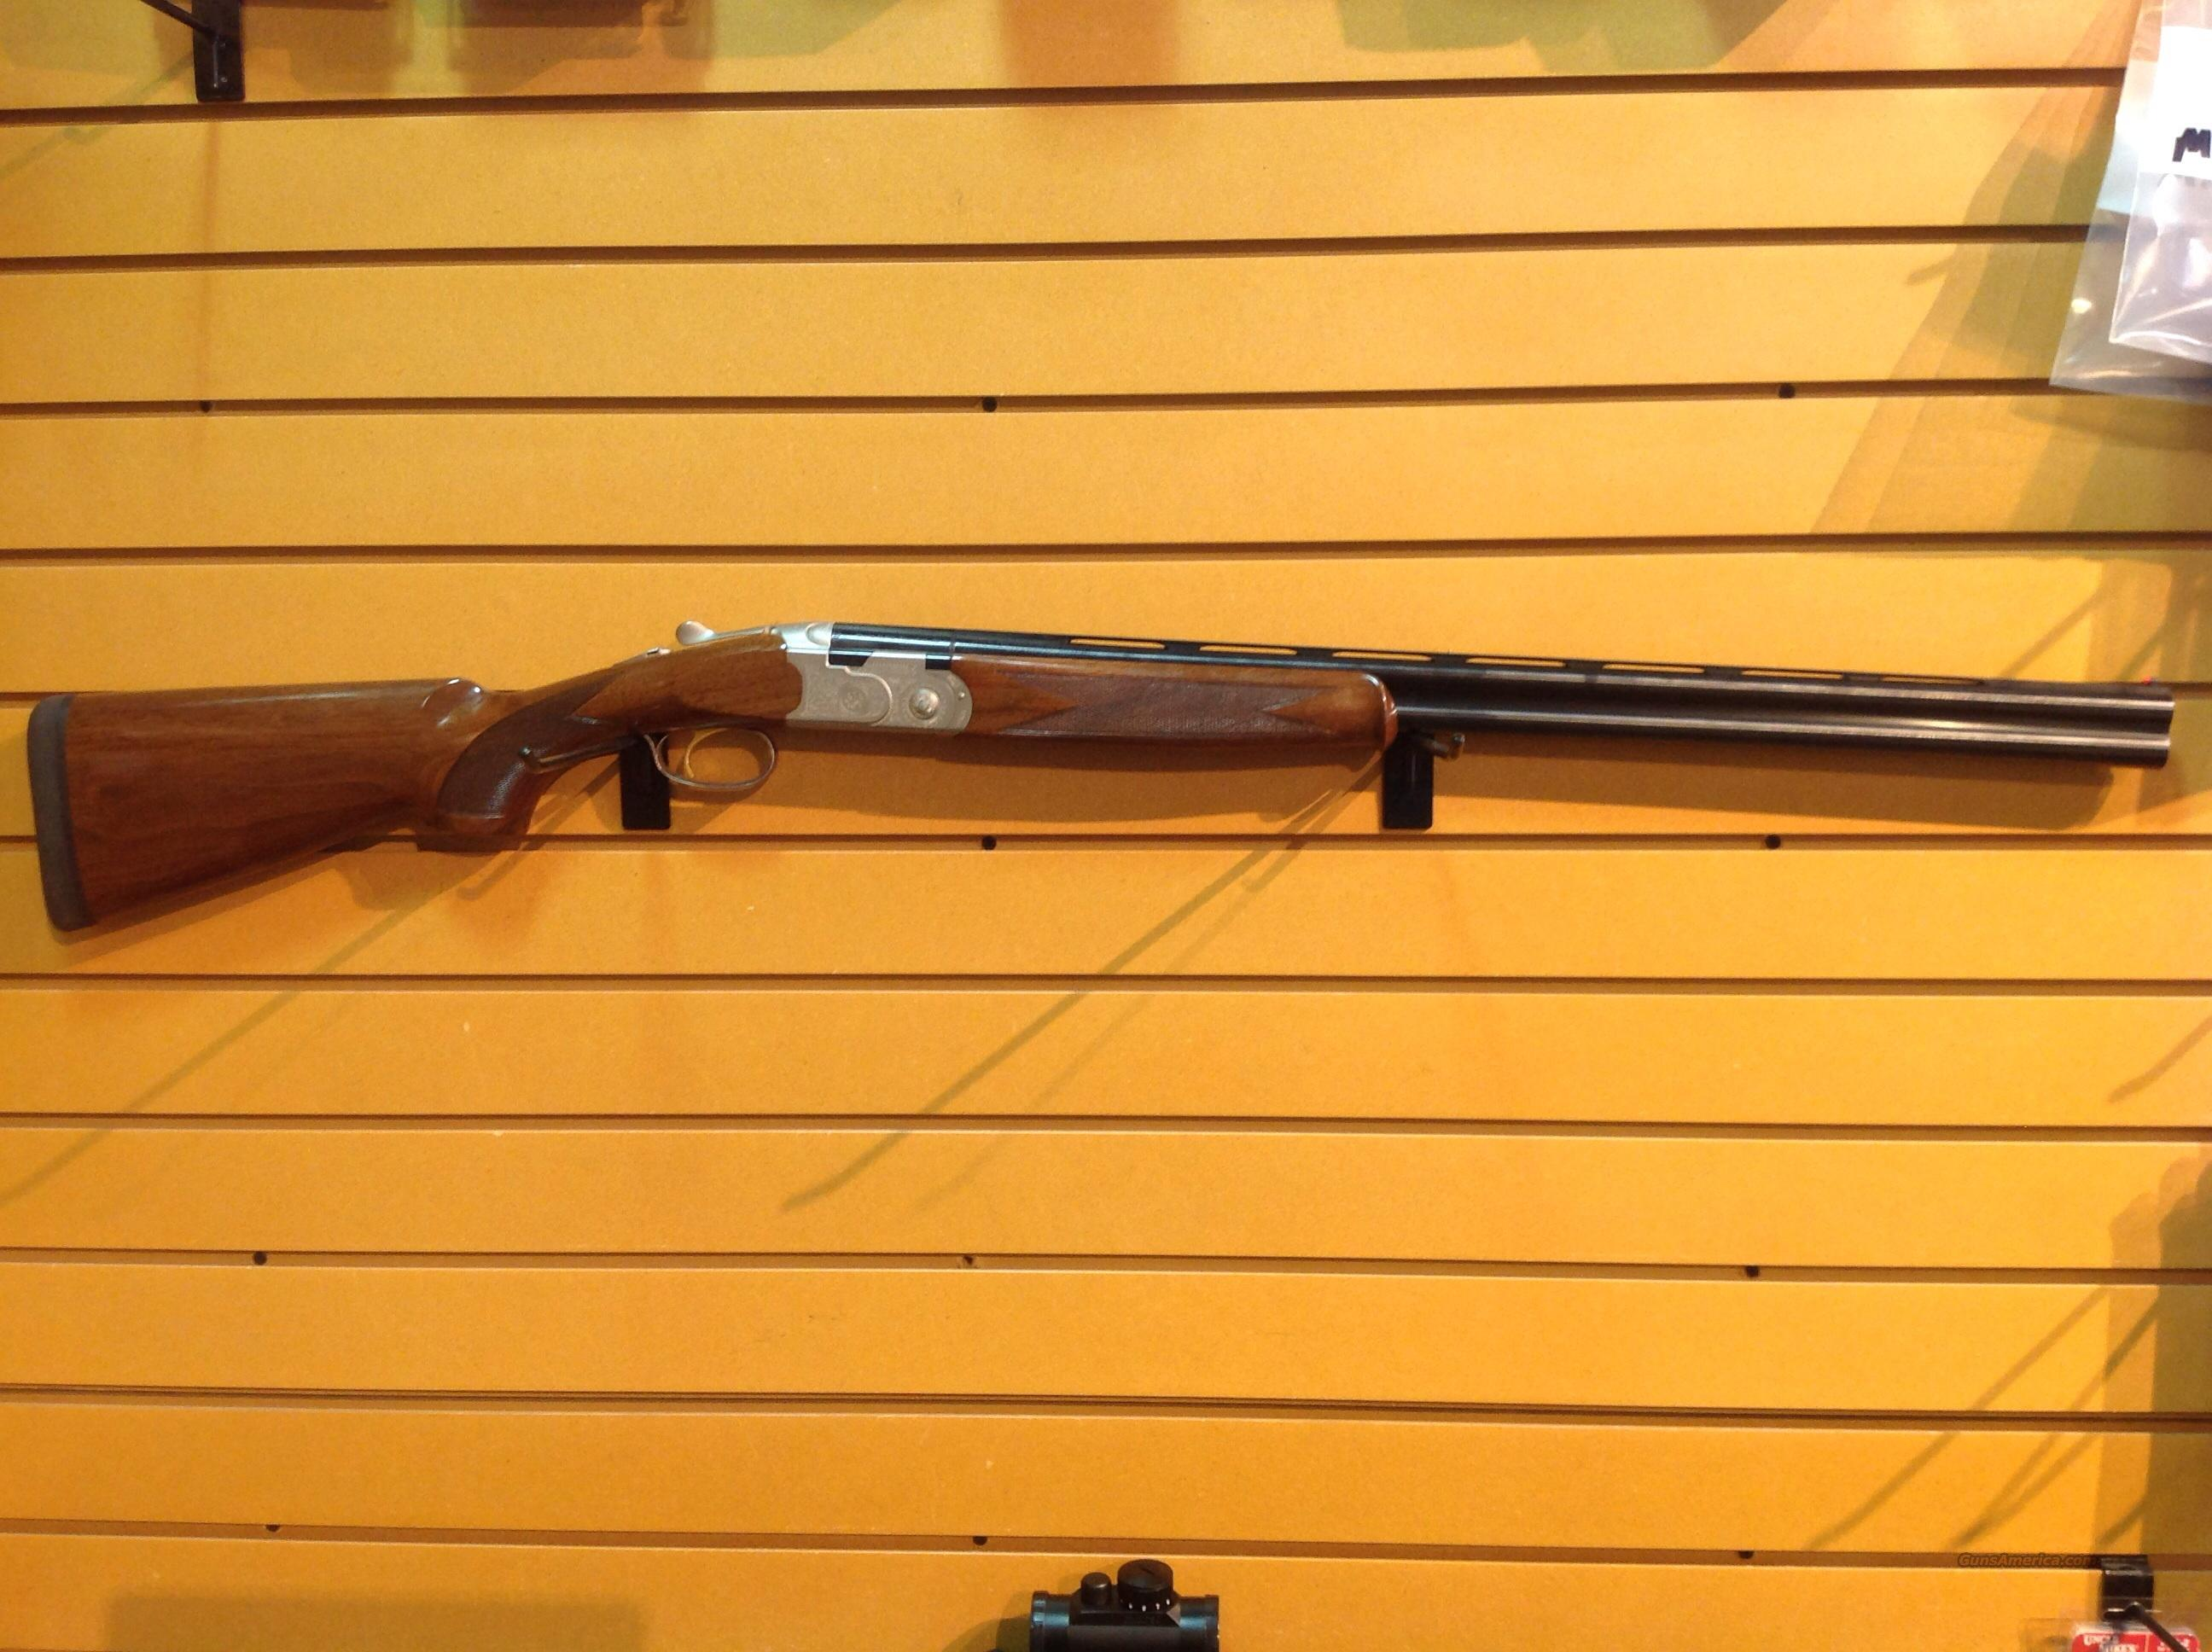 REDUCED Beretta 686 silver pigeon 20 ga.  Guns > Shotguns > Beretta Shotguns > O/U > Hunting